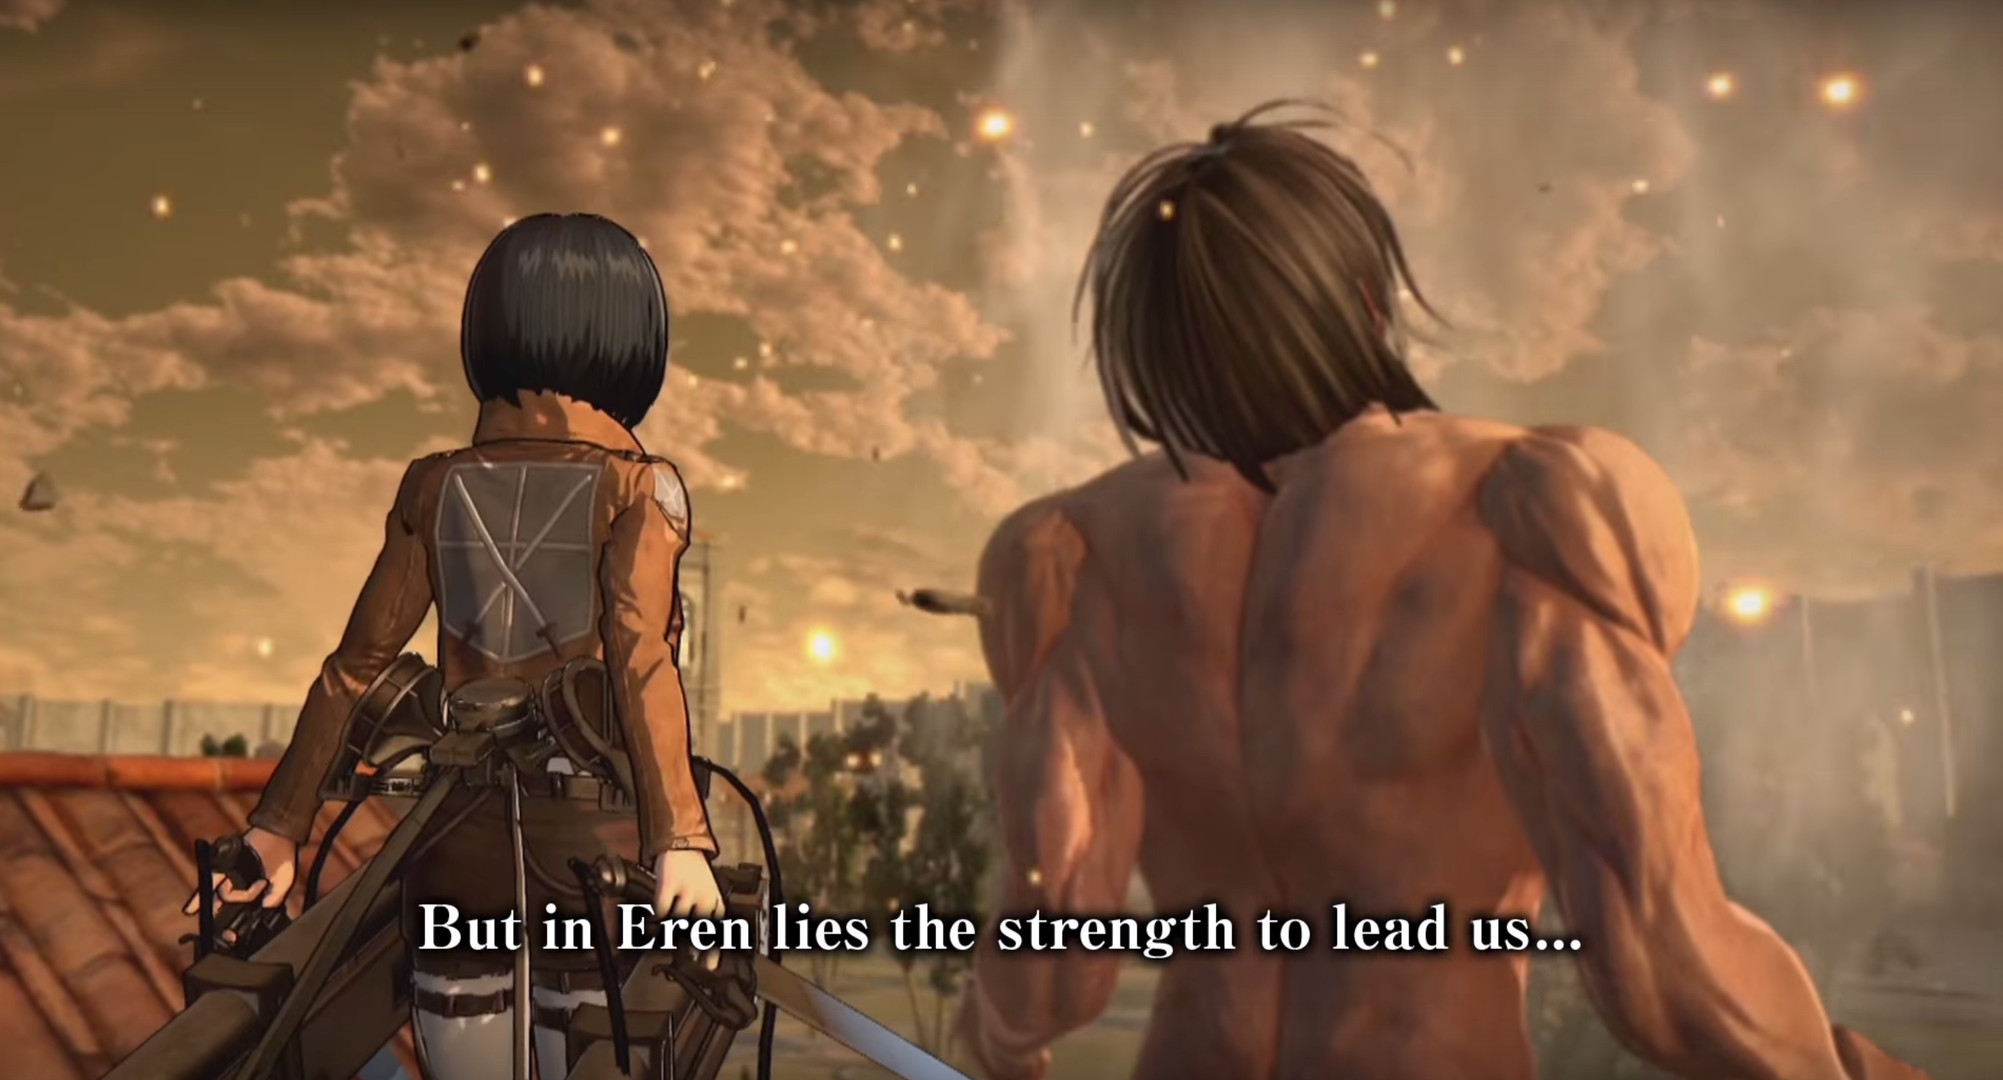 Watch the new trailer for Attack on Titan